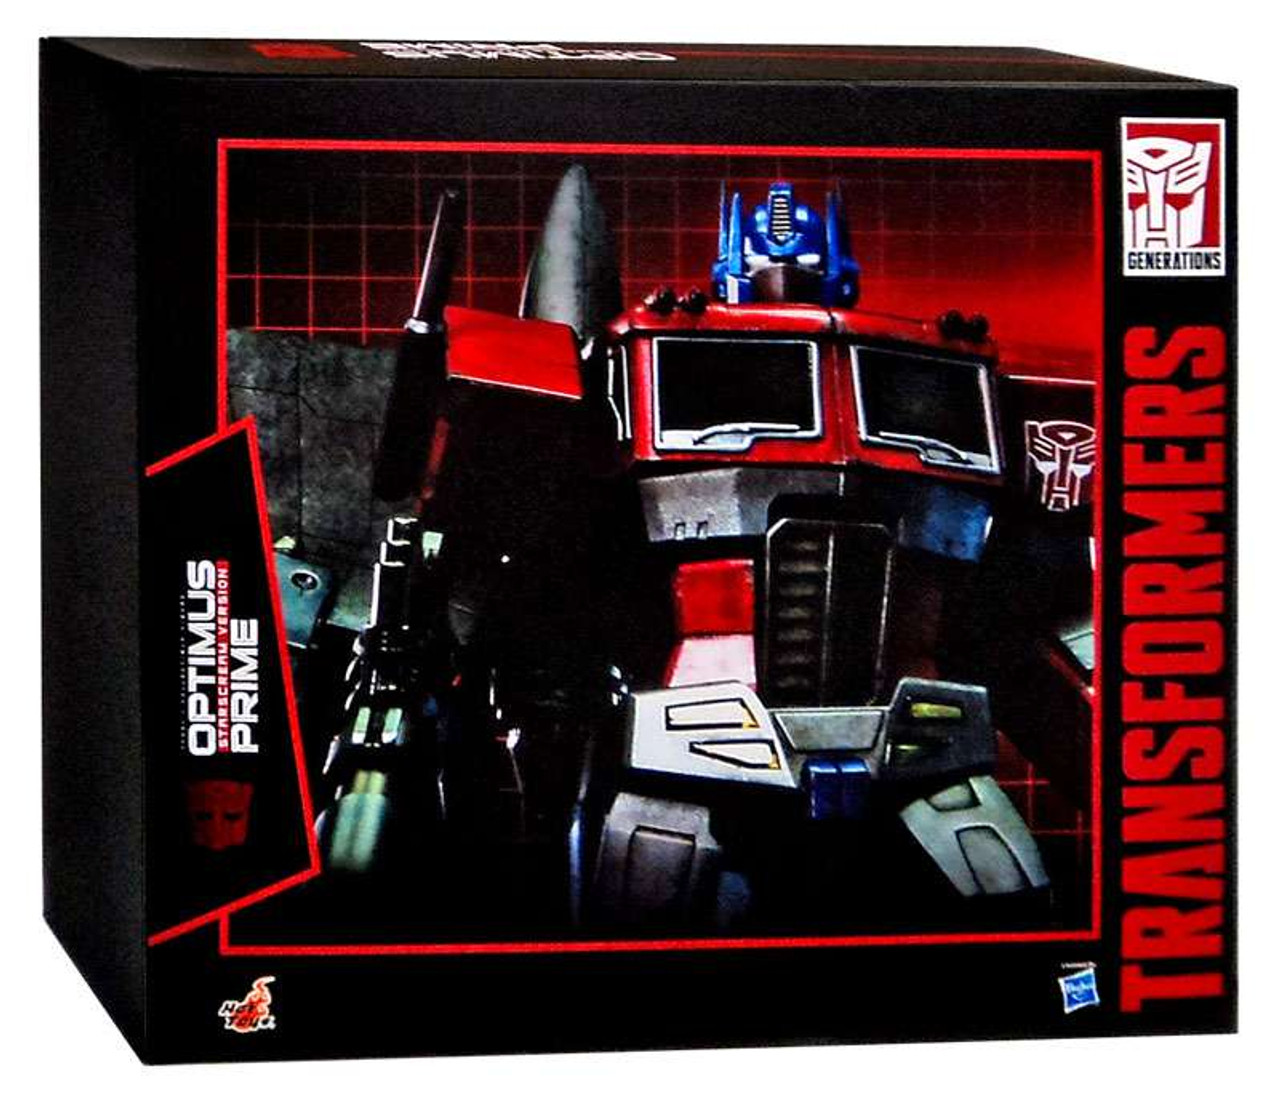 Transformers Optimus Prime 1:6 Collectible Figure [Starscream Version]